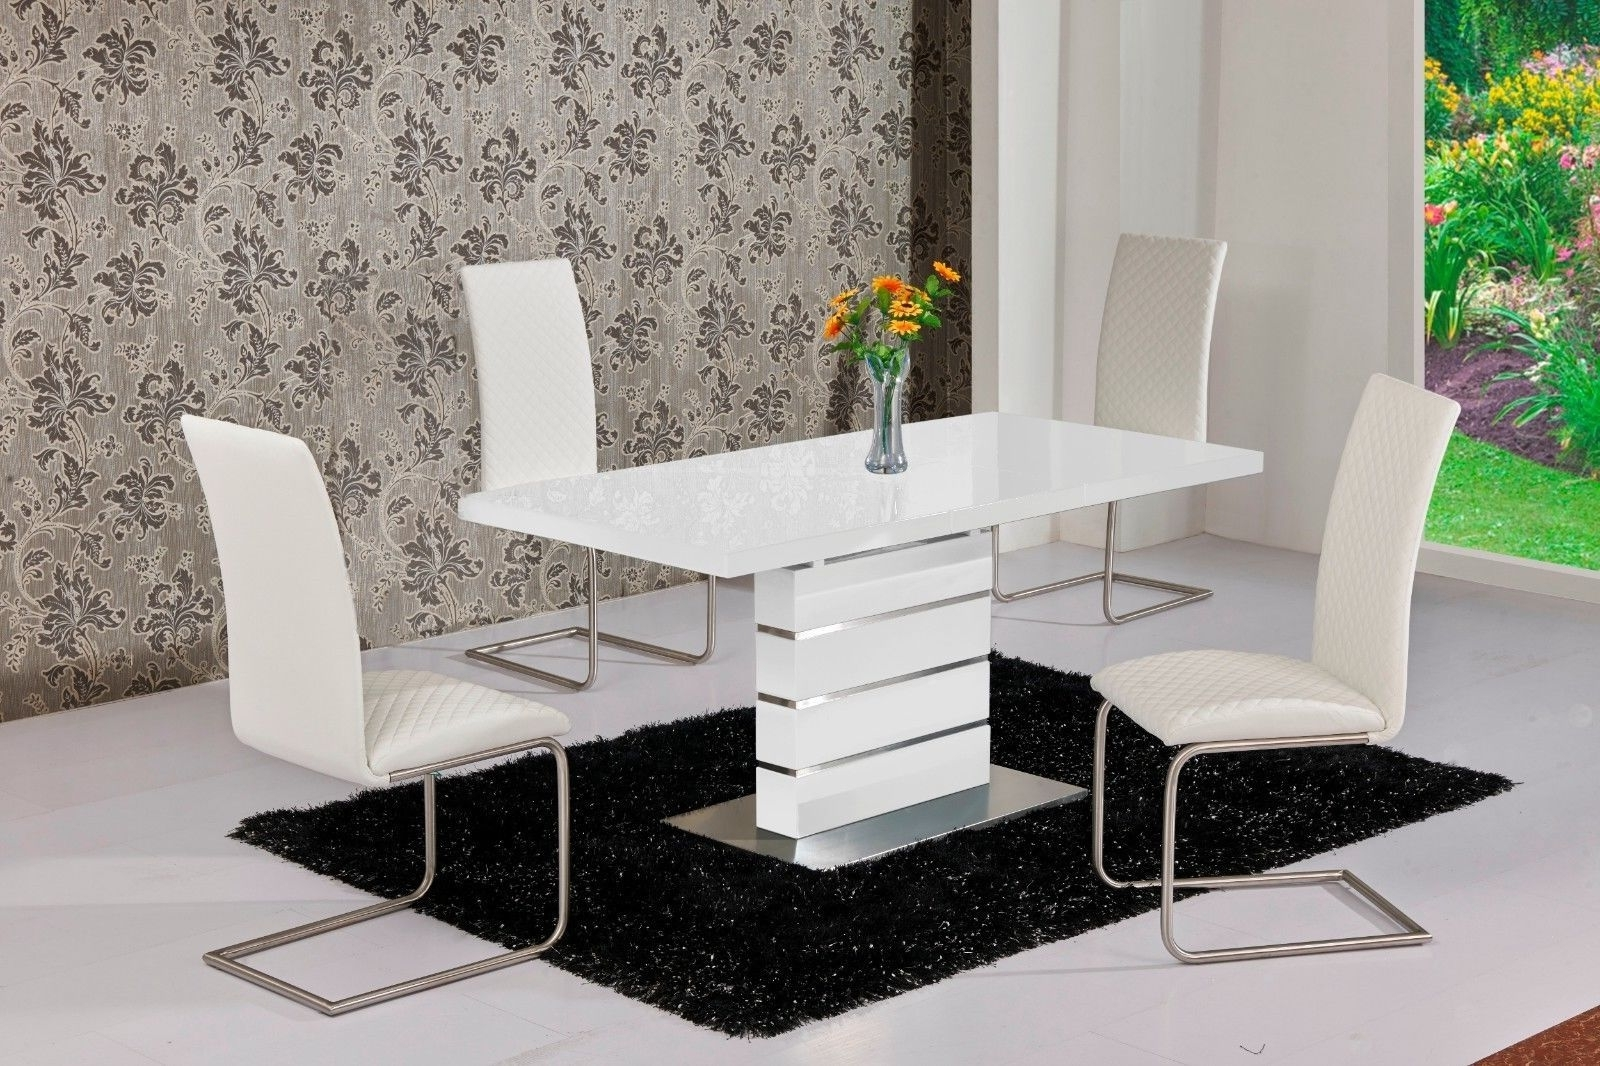 Famous Mace High Gloss Extending 120 160 Dining Table & Chair Set – White Inside High Gloss Dining Tables (View 6 of 25)